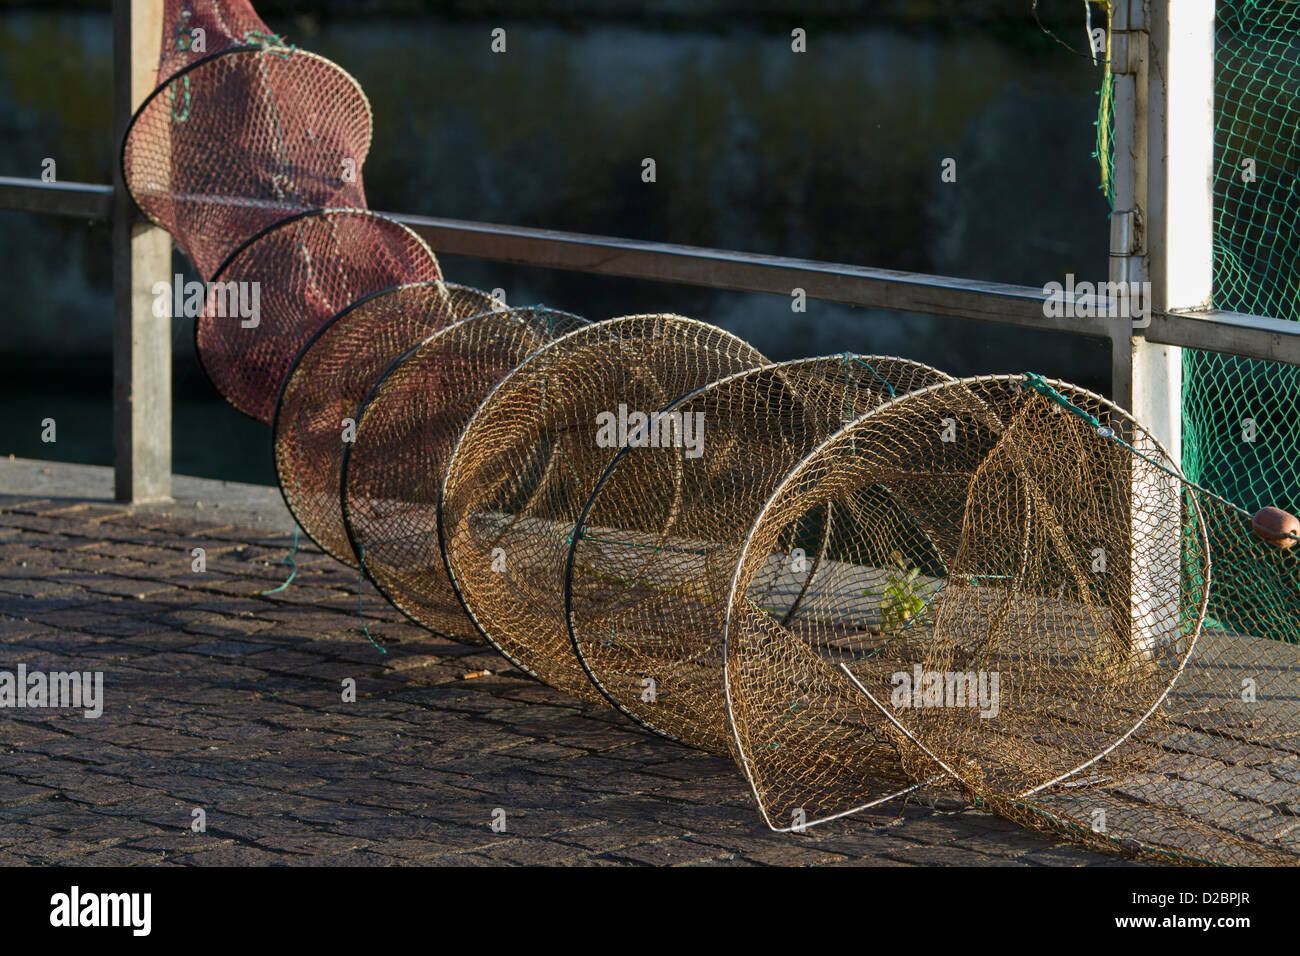 Drum net fish trap stock photo royalty free image for Fish trap net